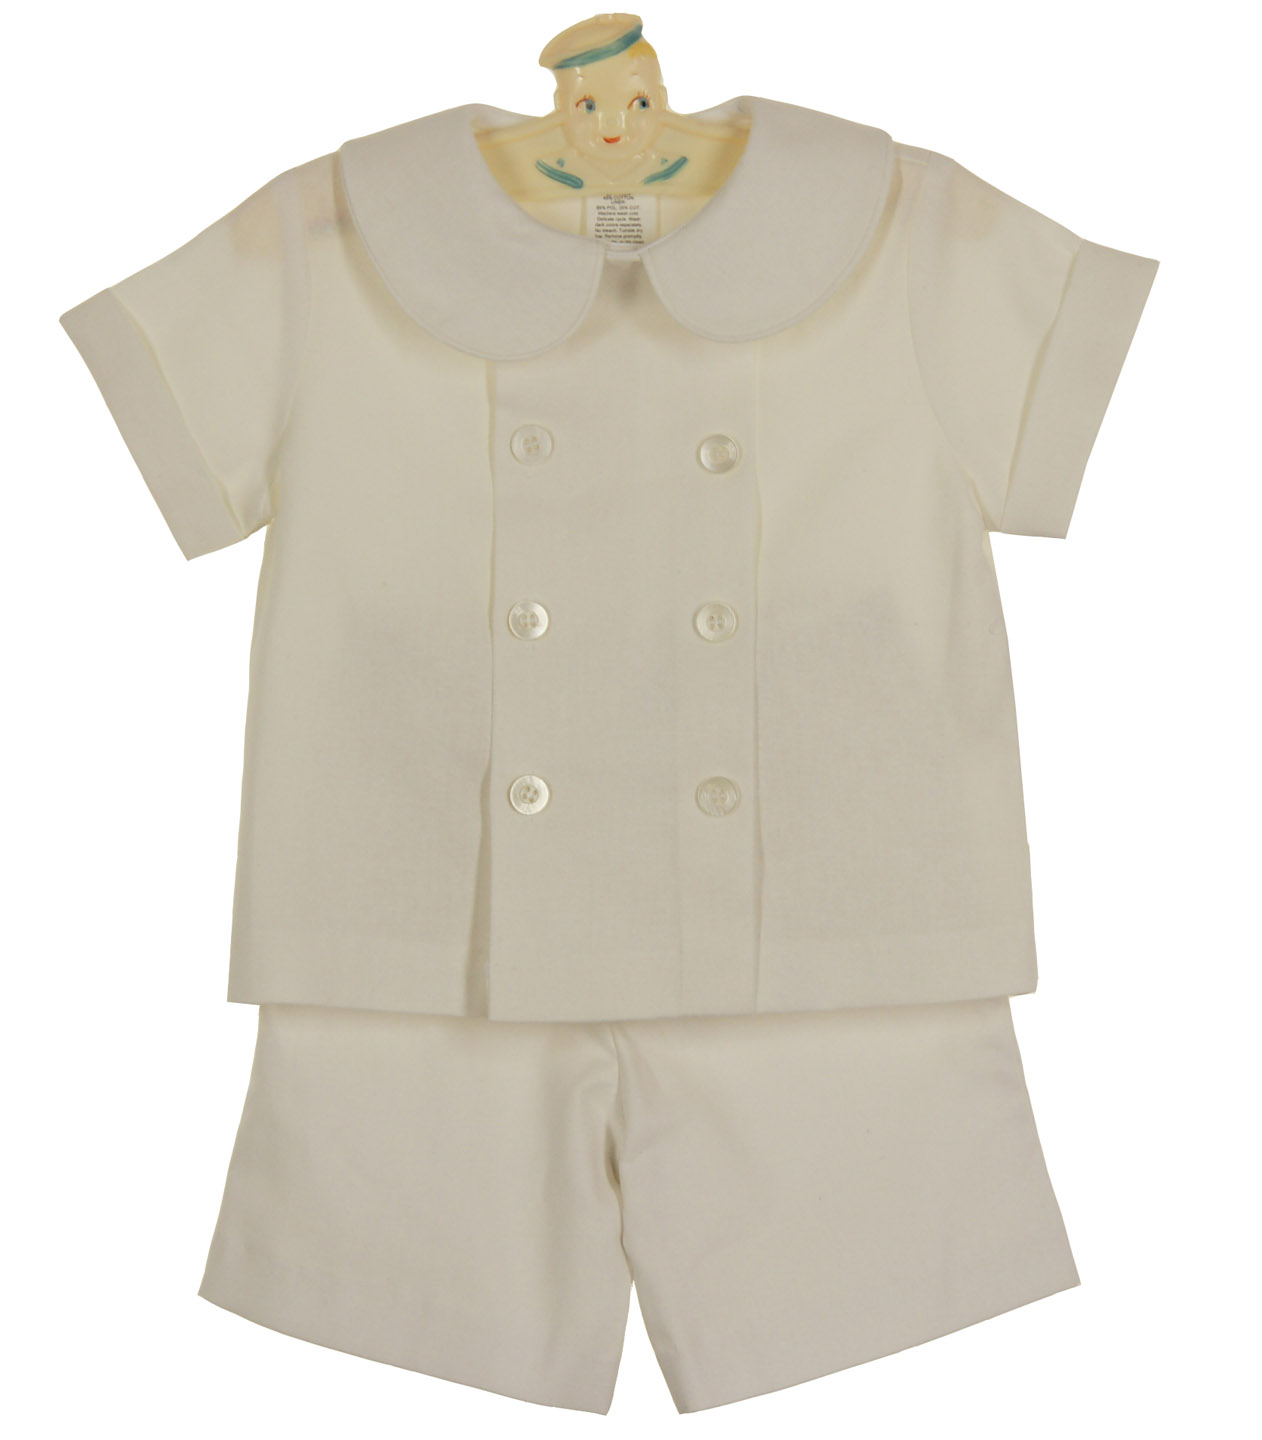 8afe2abb39 Bailey Boys candlelight linen blend double breasted shorts set